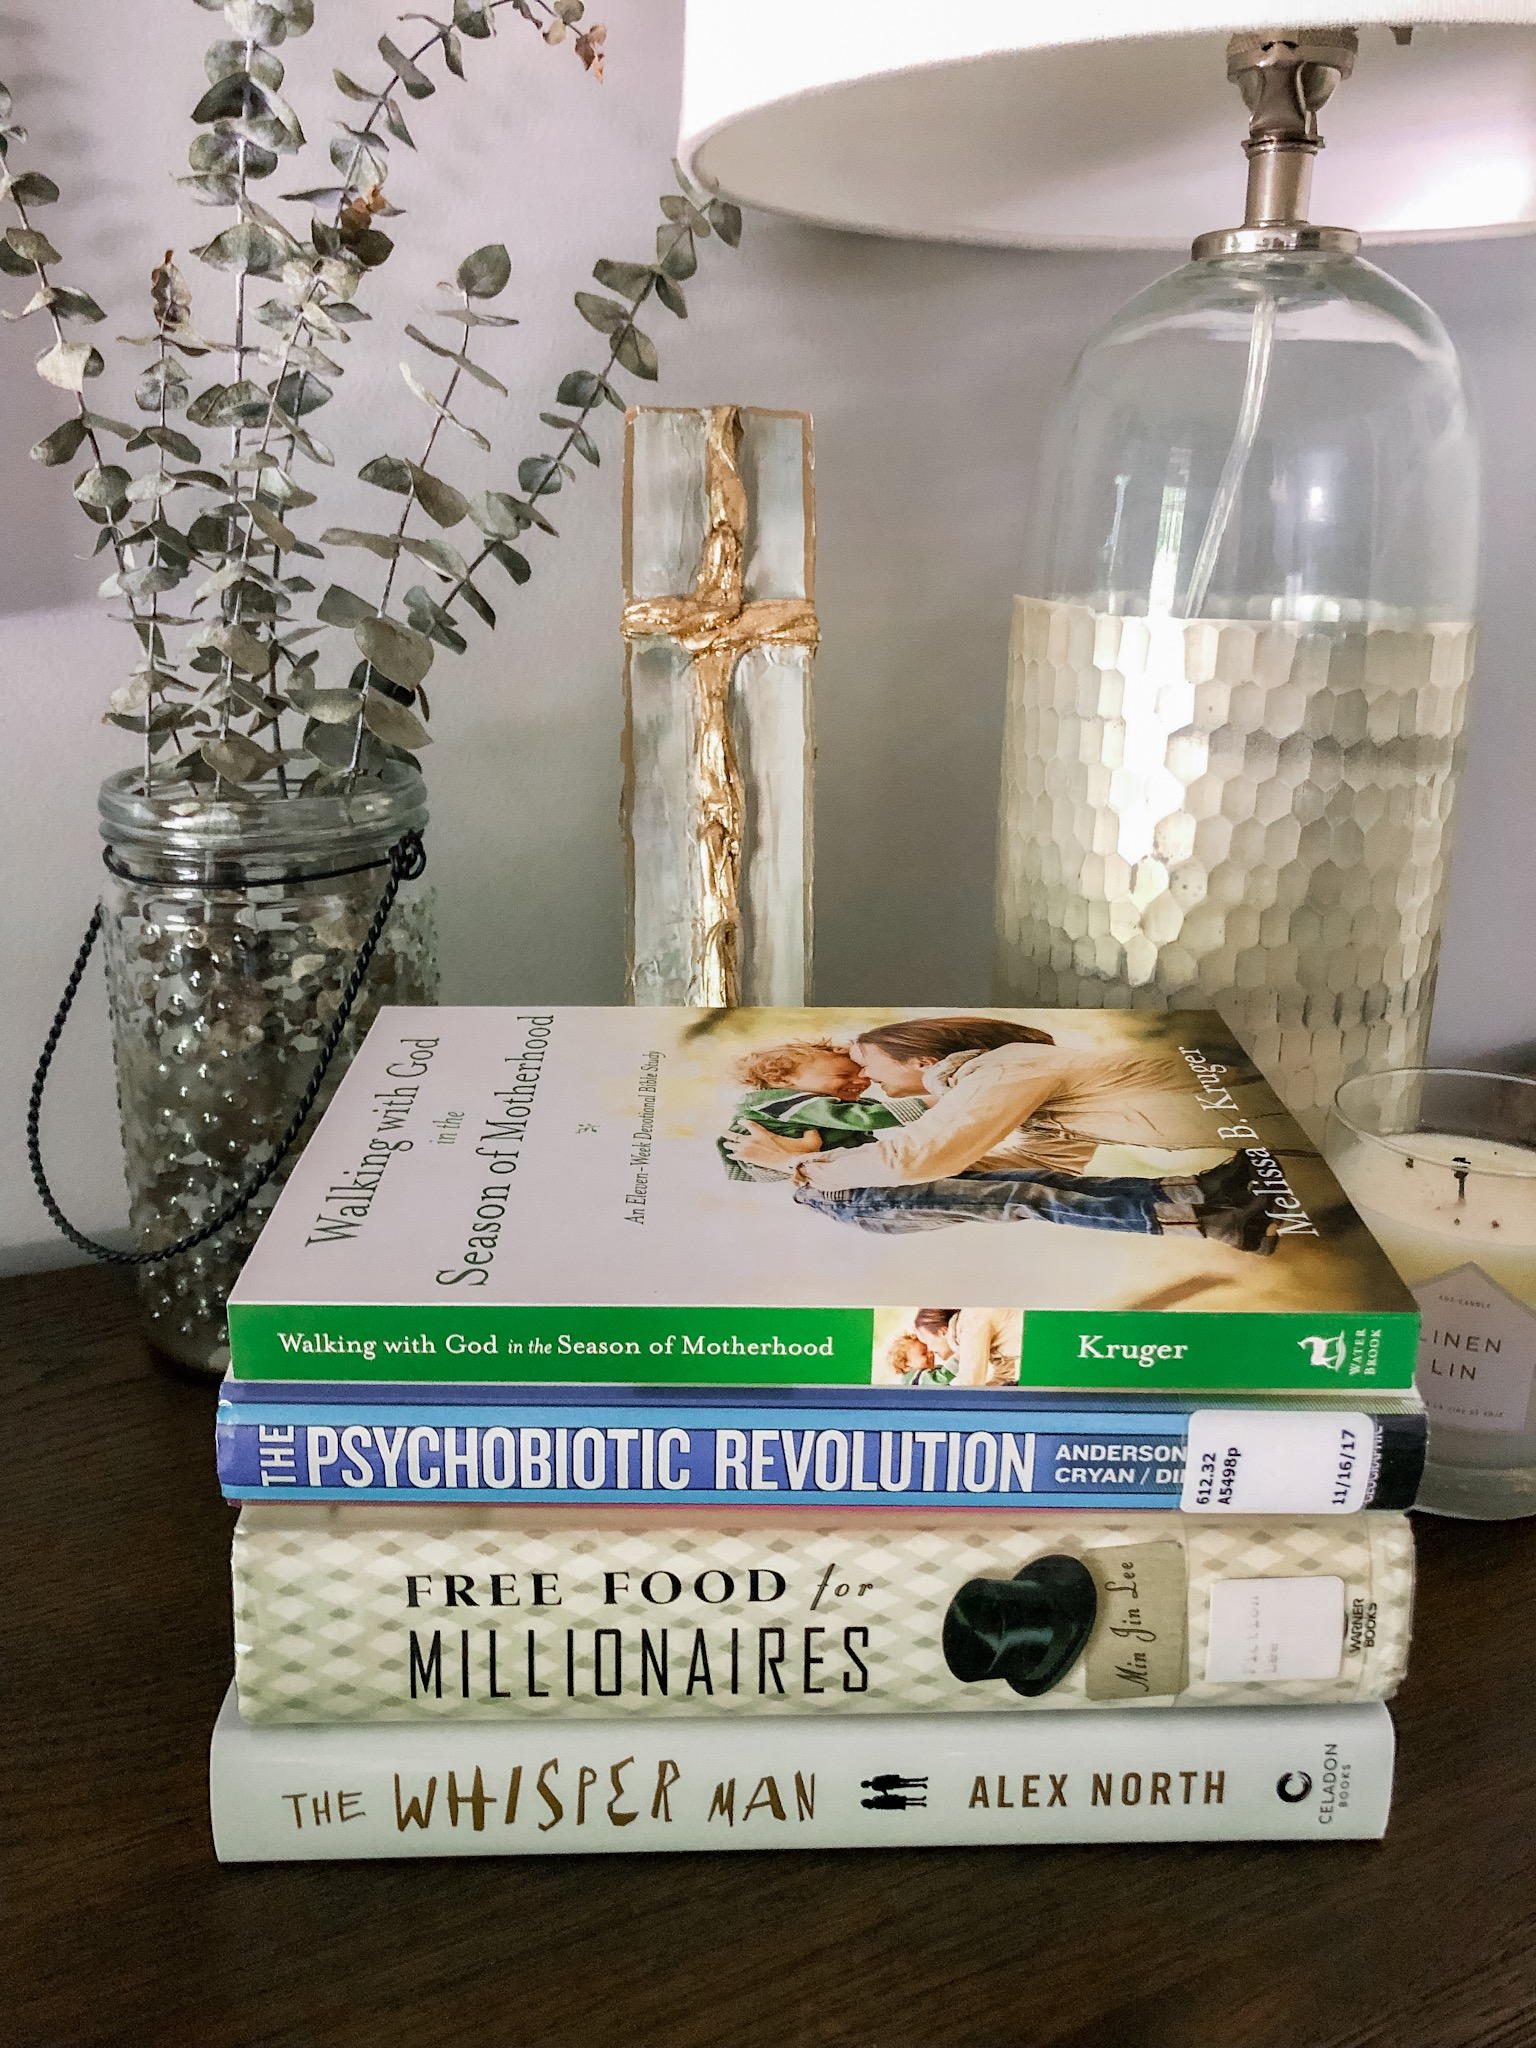 September 2019 - Walking with God in the Season of Motherhood by Melissa B. KrugerThe Psychobiotic Revolution by Scott C. AndersonFree Food for Millionaires by Min Jin LeeThe Whisper Man by Alex North